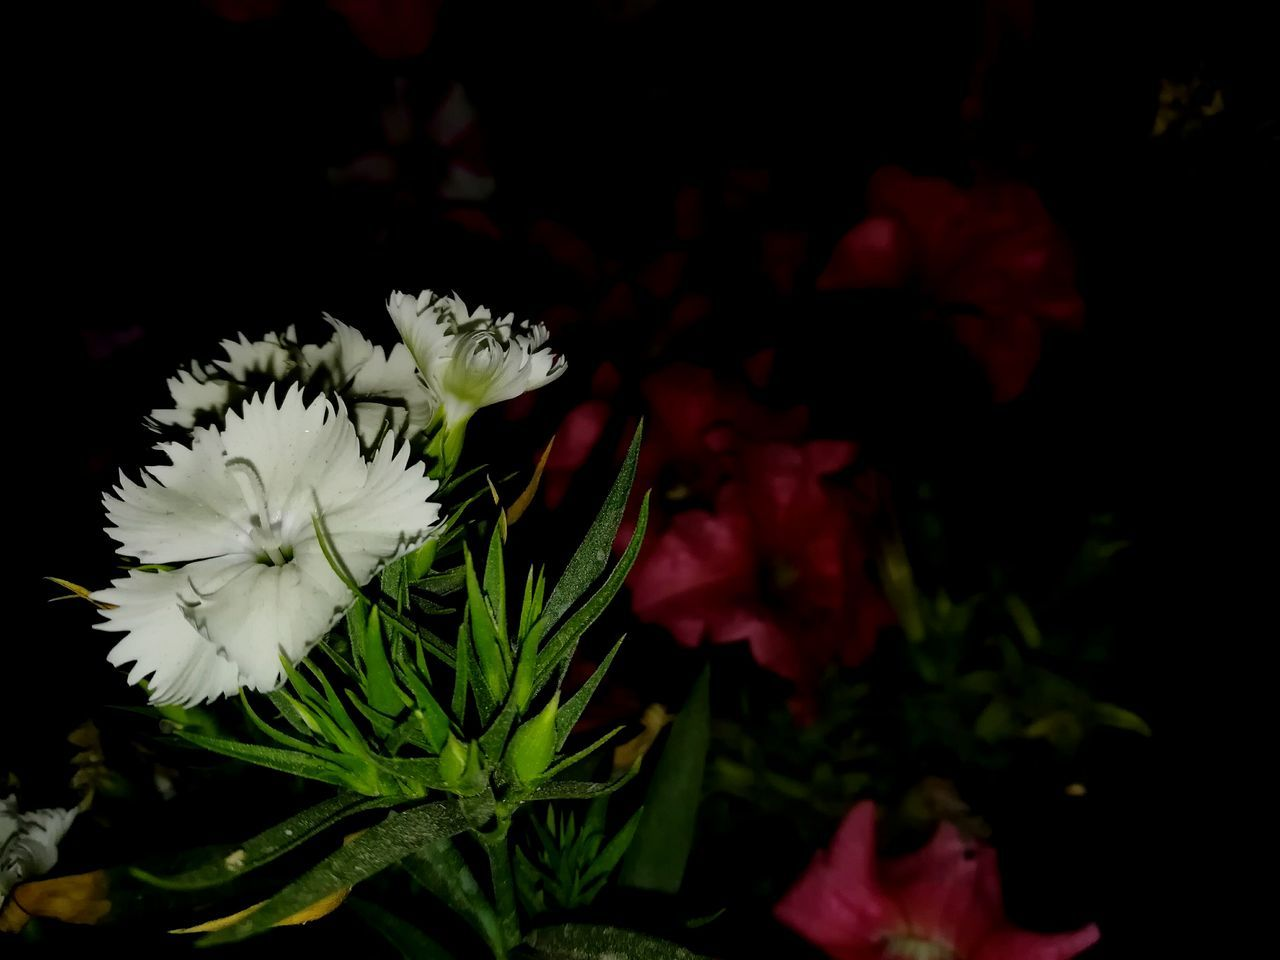 Hello World ✌ New Shot Eyem Best Shots Best I Think Without Light! Pink Flower My Garden @my Home Flower Nature Growth Plant Close-up Freshness Beauty In Nature No People Flower Head Leaf Fragility Outdoors Night